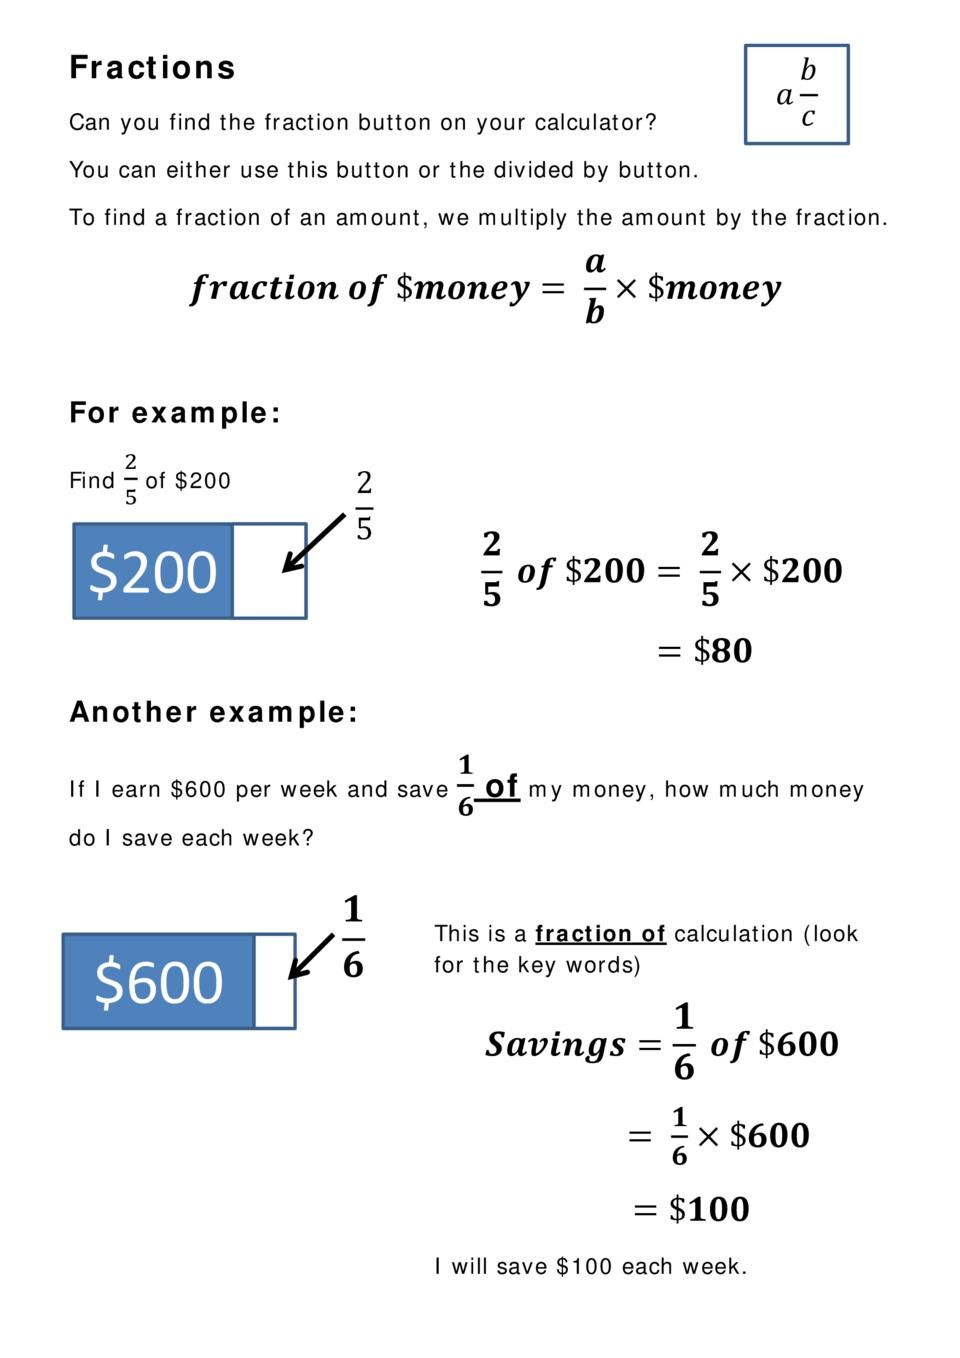 Fractions calculating fraction of a quantity made with